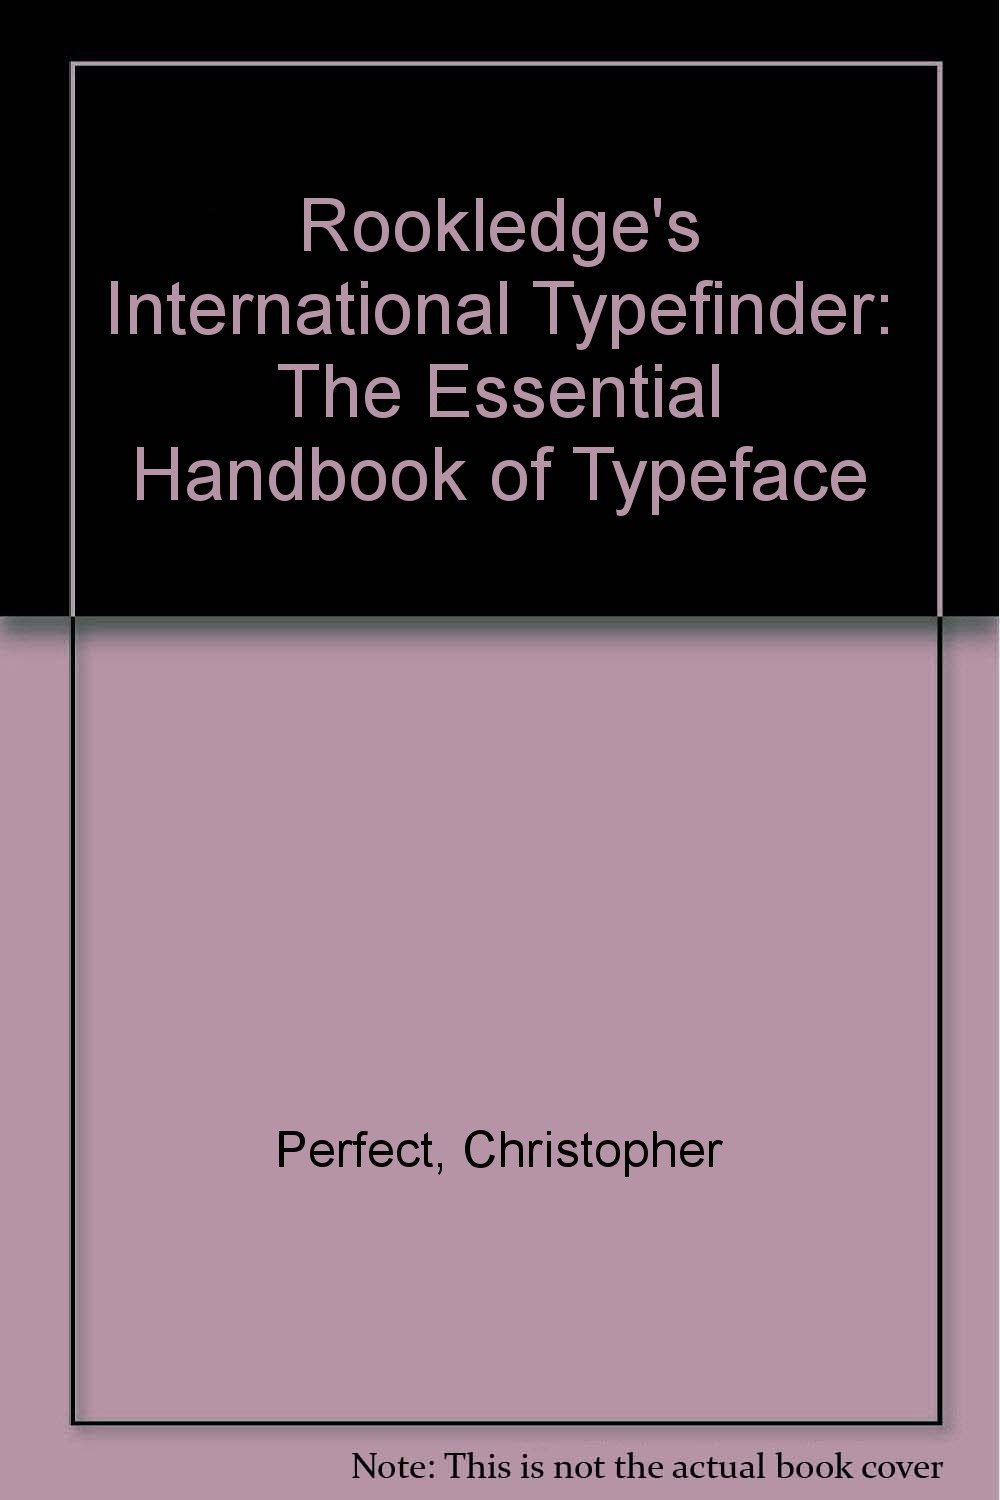 Rookledge's international typefinder : the essential handbook of typeface recognition and selection